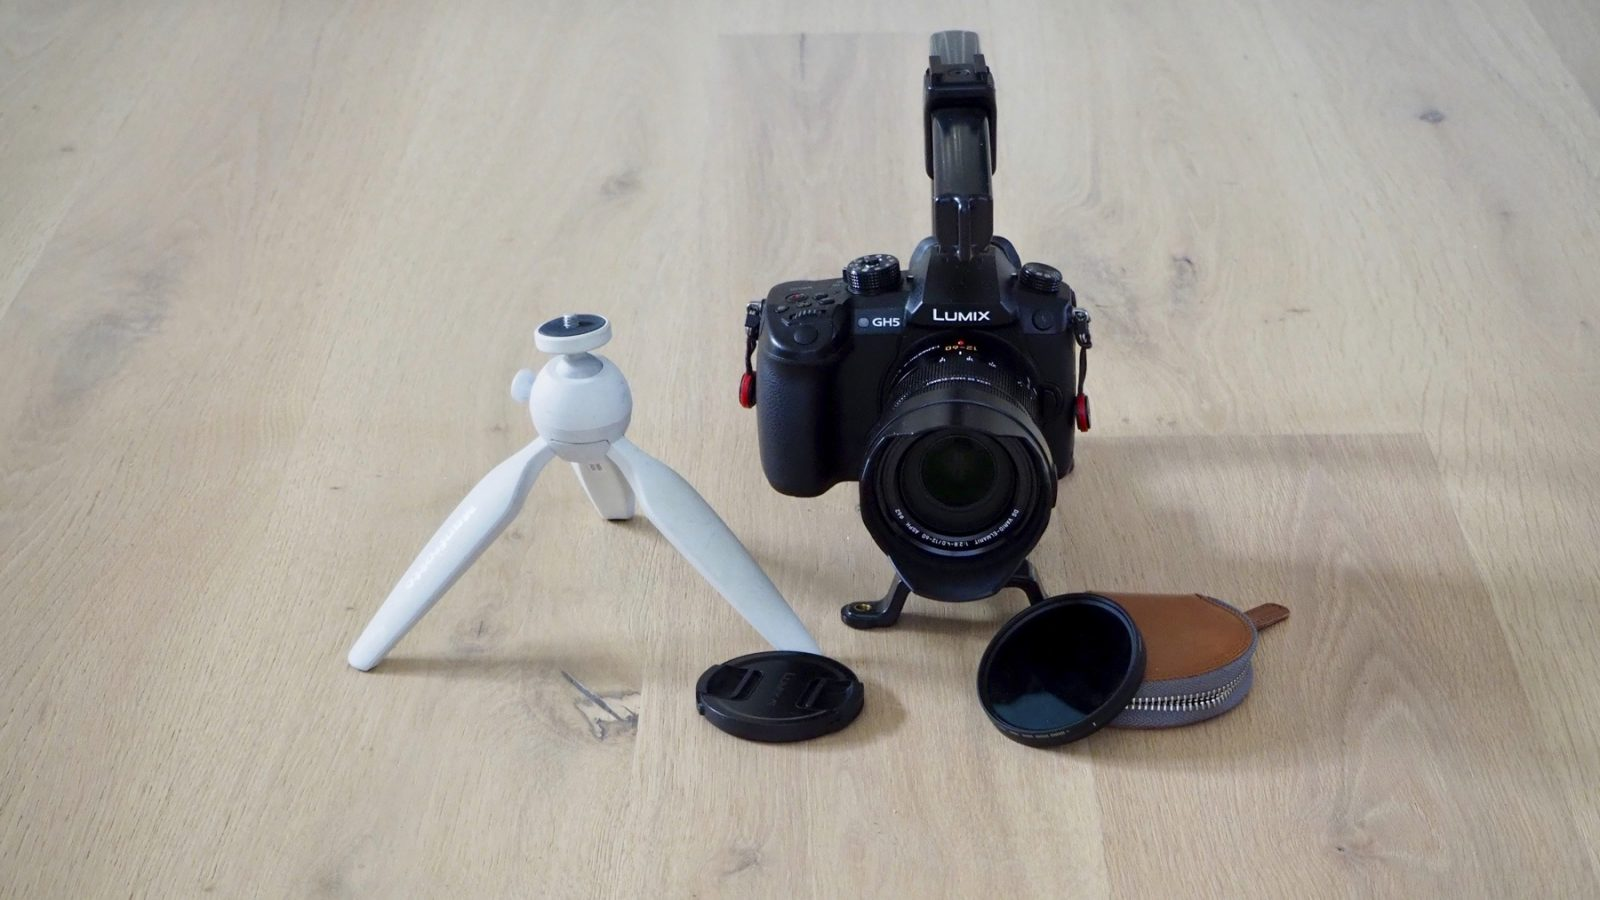 Panasonic GH5 with 12-60mm f2.8-4, Syrp ND filter, Manfrotto tripod and Cam Caddie